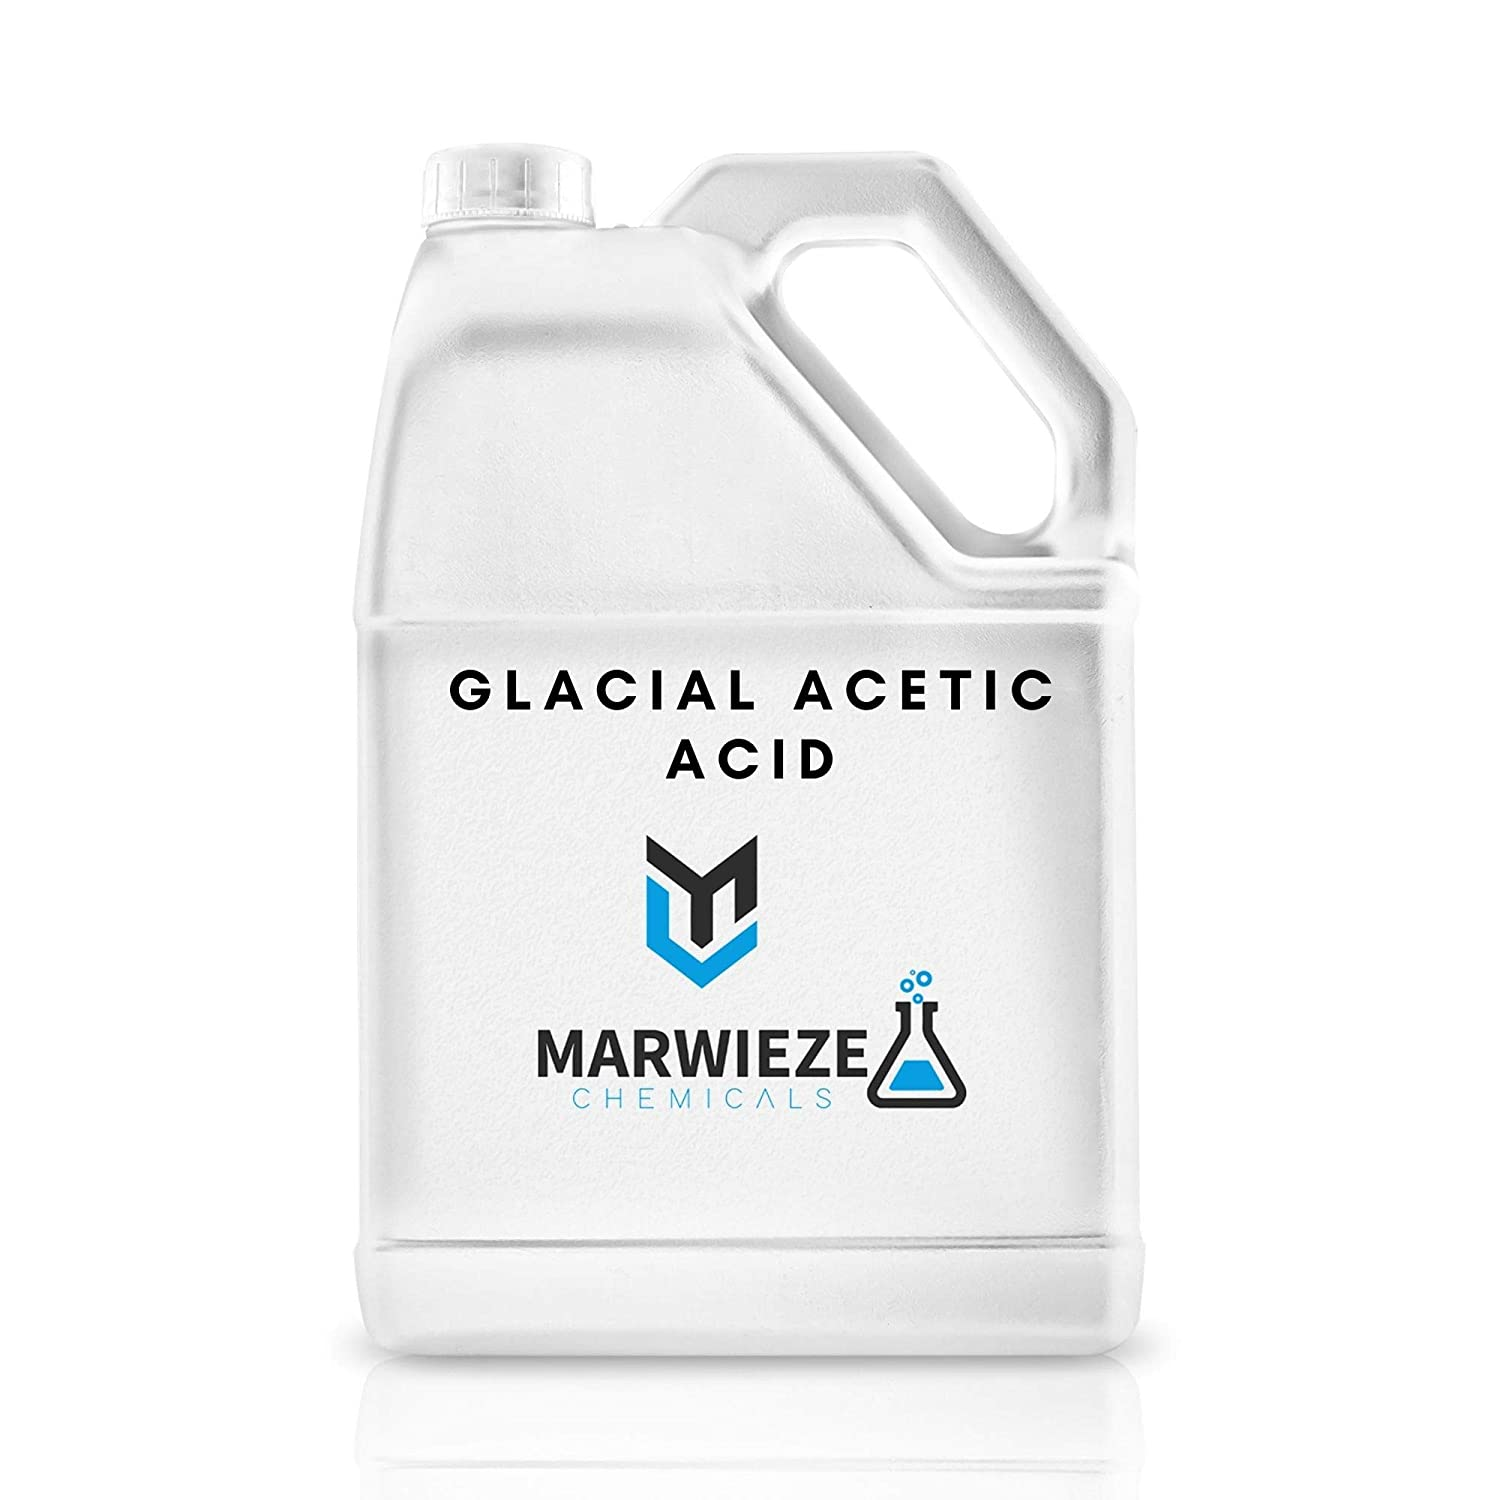 Glacial Acetic Acid – 1 Gallon Food Grade Acetic Acid – Highly Concentrated Formula – Ideal for Cooking, Salads, Pickles, Marinating